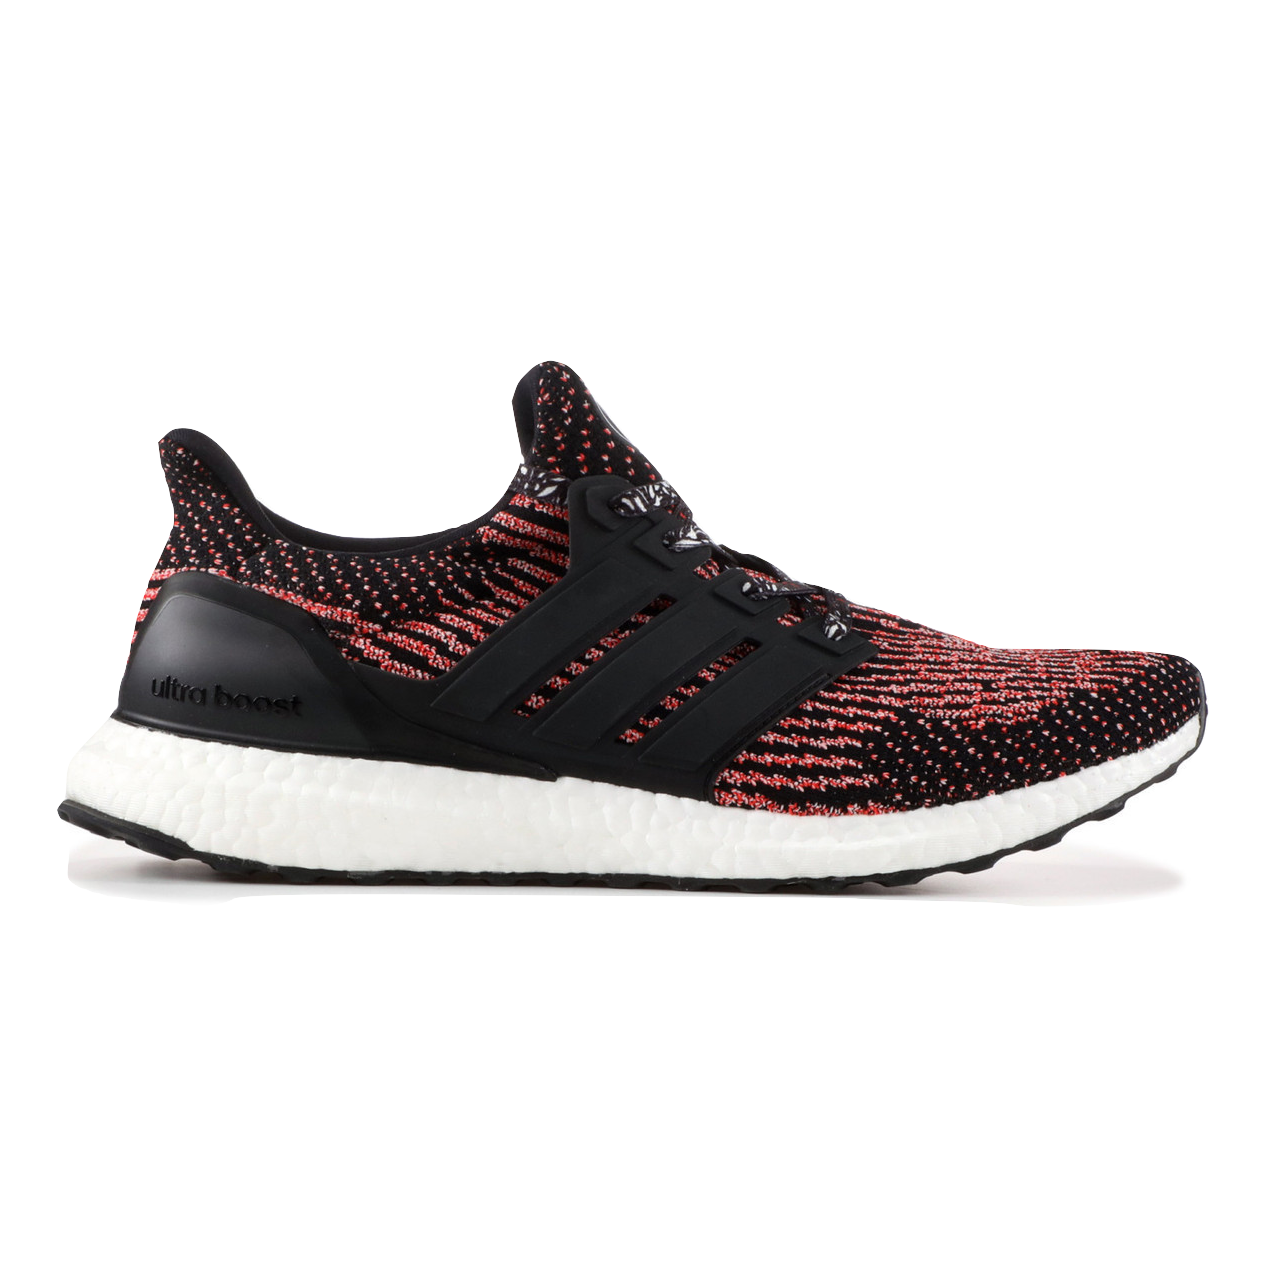 Ultraboost CNY - Chinese New Year